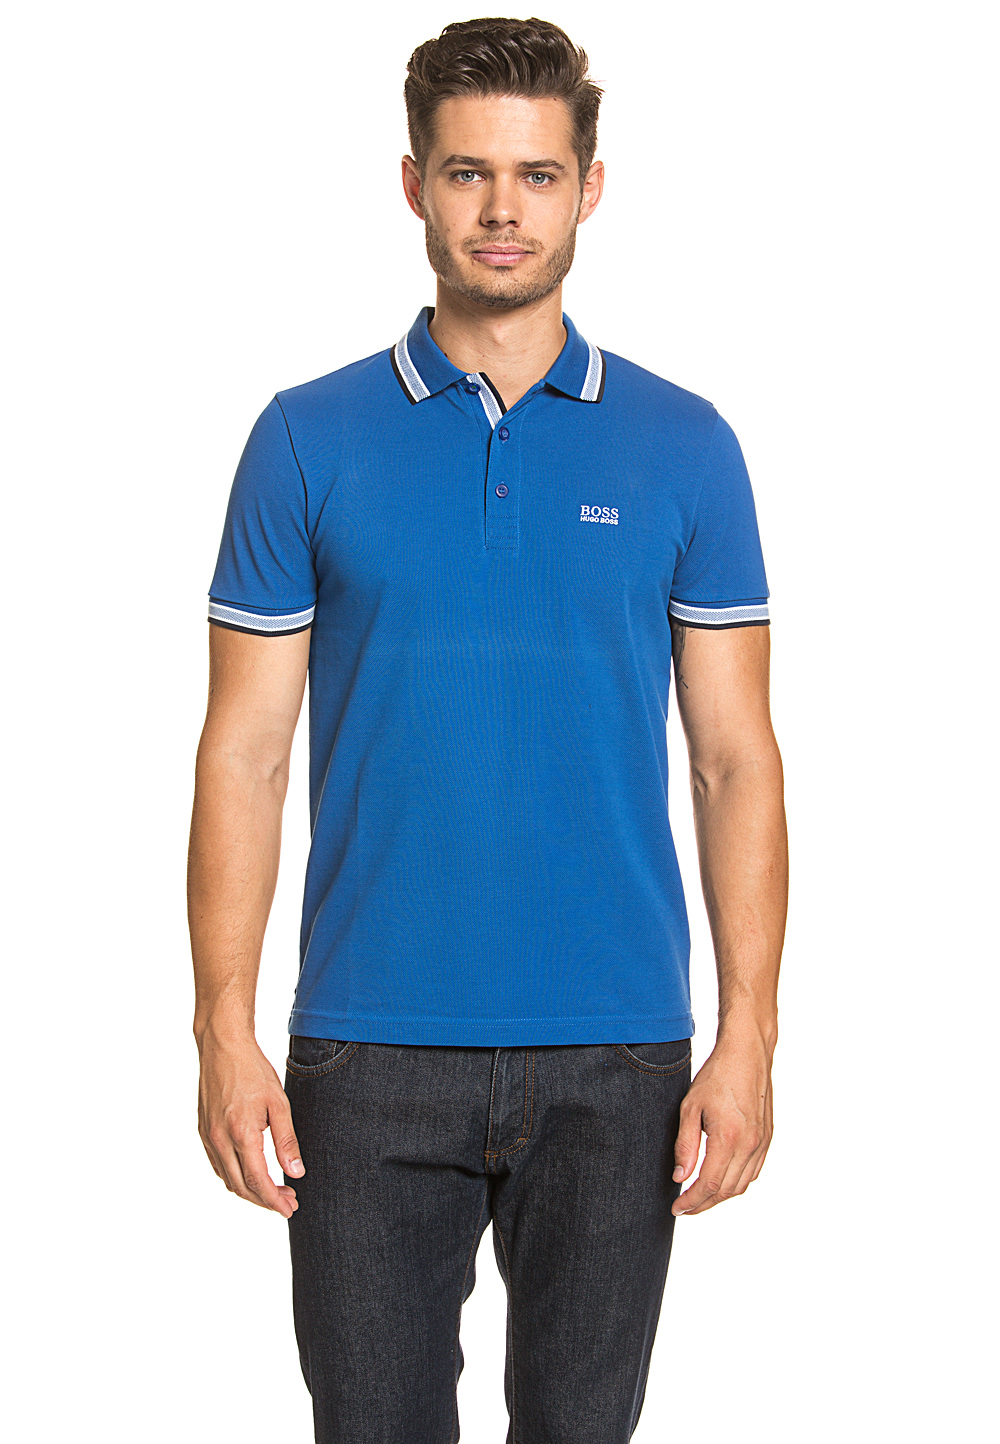 Boss Green Polo-Shirt Paddy, Regular Fit blau | Bekleidung > Polo Shirts > Kurzarm | Blau | Boss Green